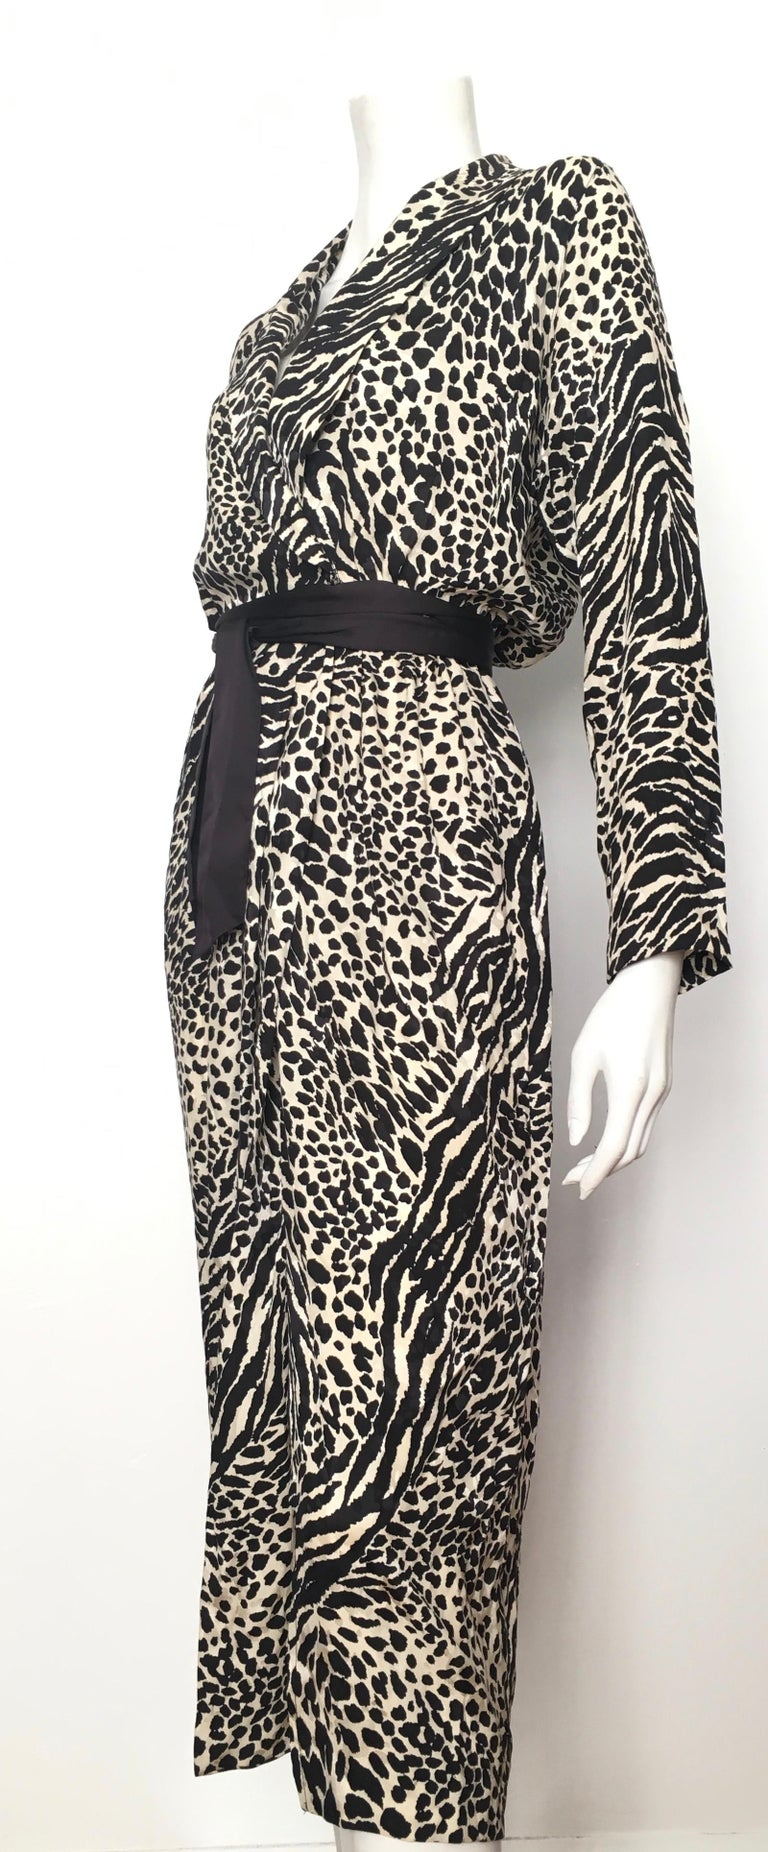 Geoffrey Beene for Lillie Rubin 1980 Animal Print Silk Dress Size 6. For Sale 3